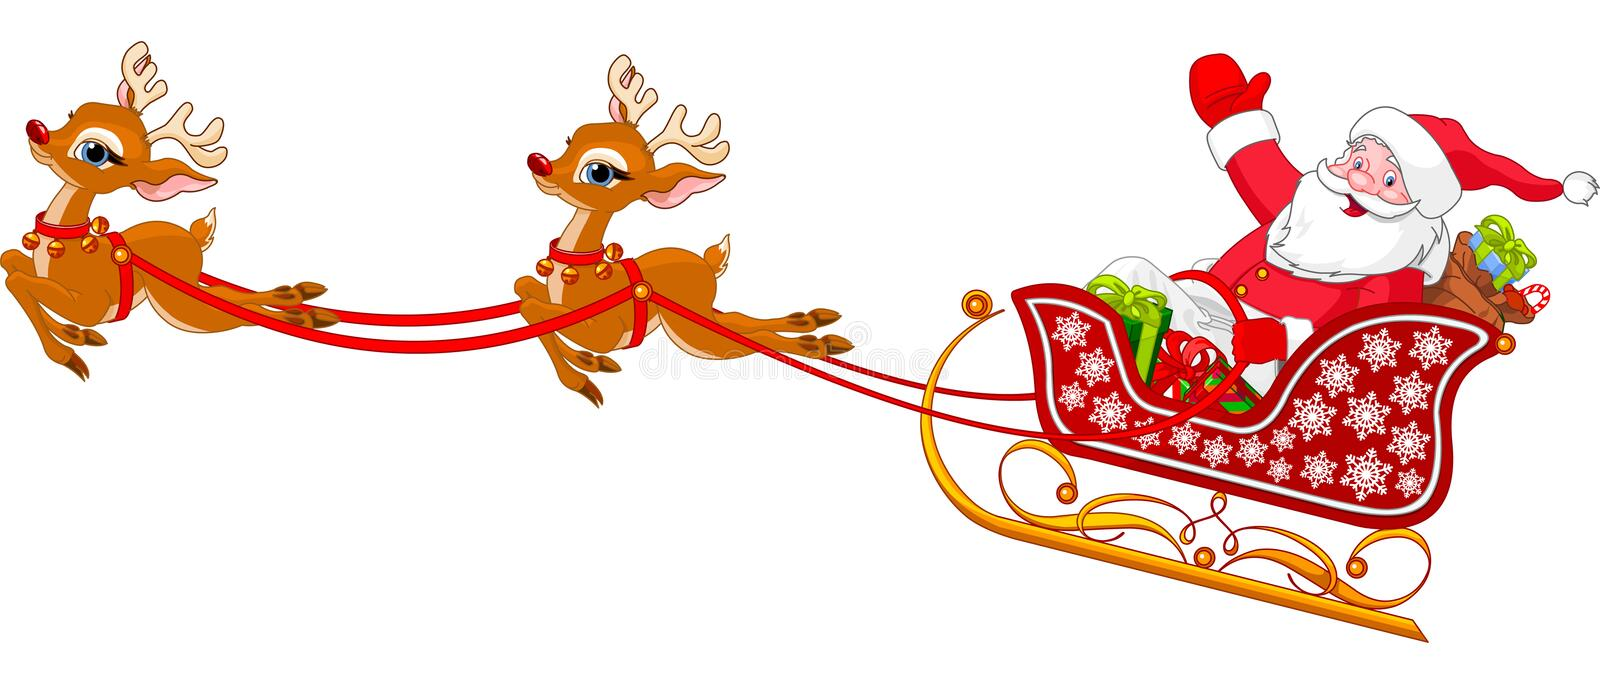 Santa Claus in Sled. Cartoon illustration of Santa Claus in his sleigh